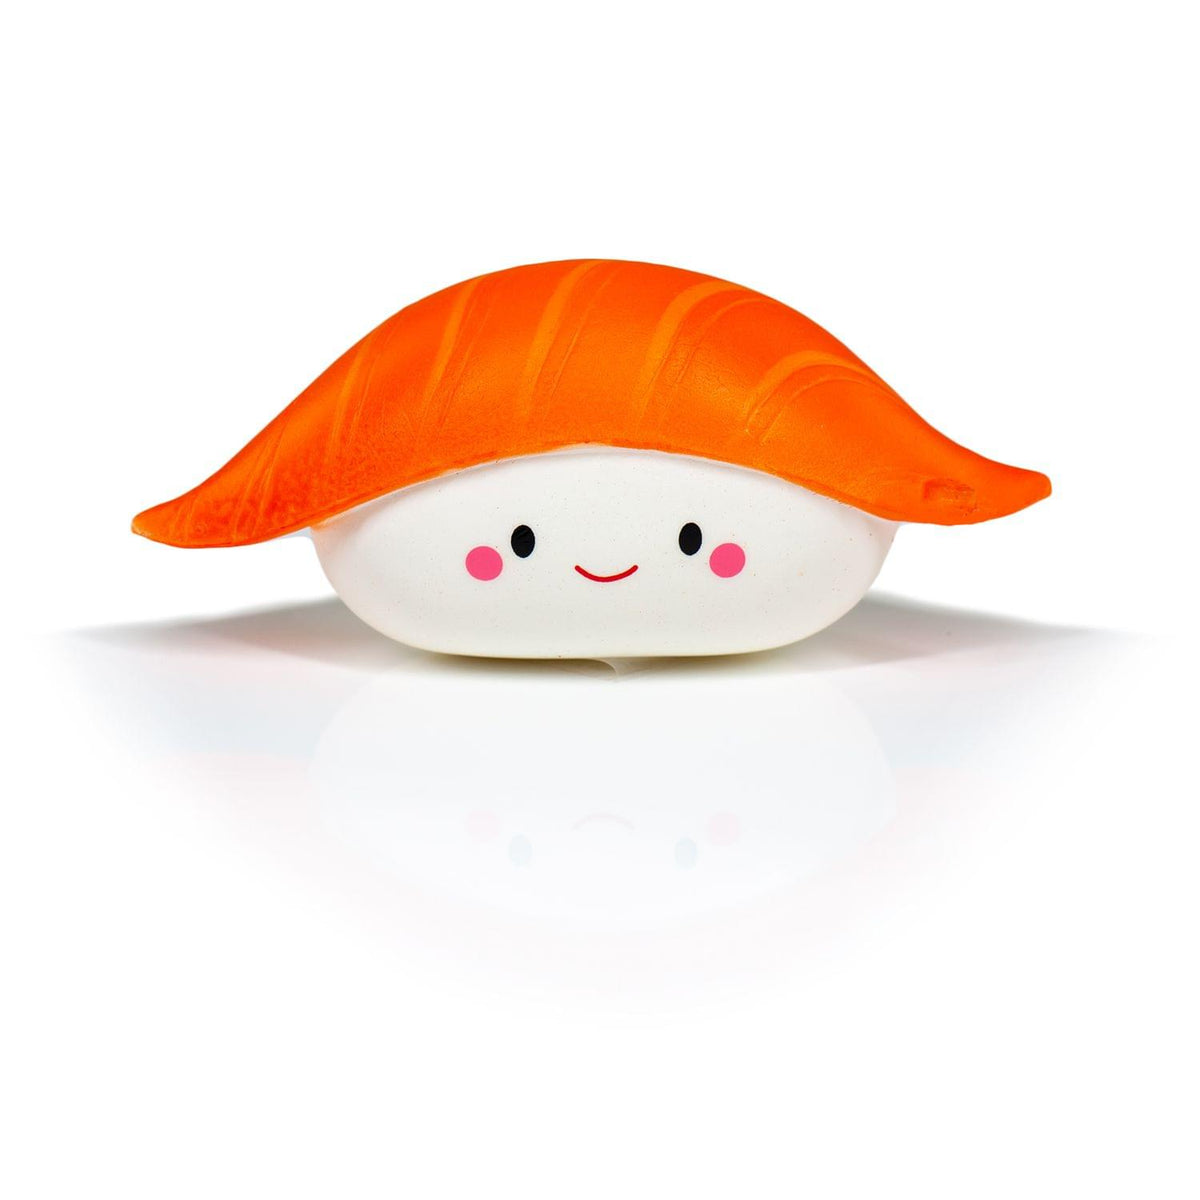 Smiling Salmon Nigiri Sushi Scented Squishy Foam Toy | Japanese Anime Collection